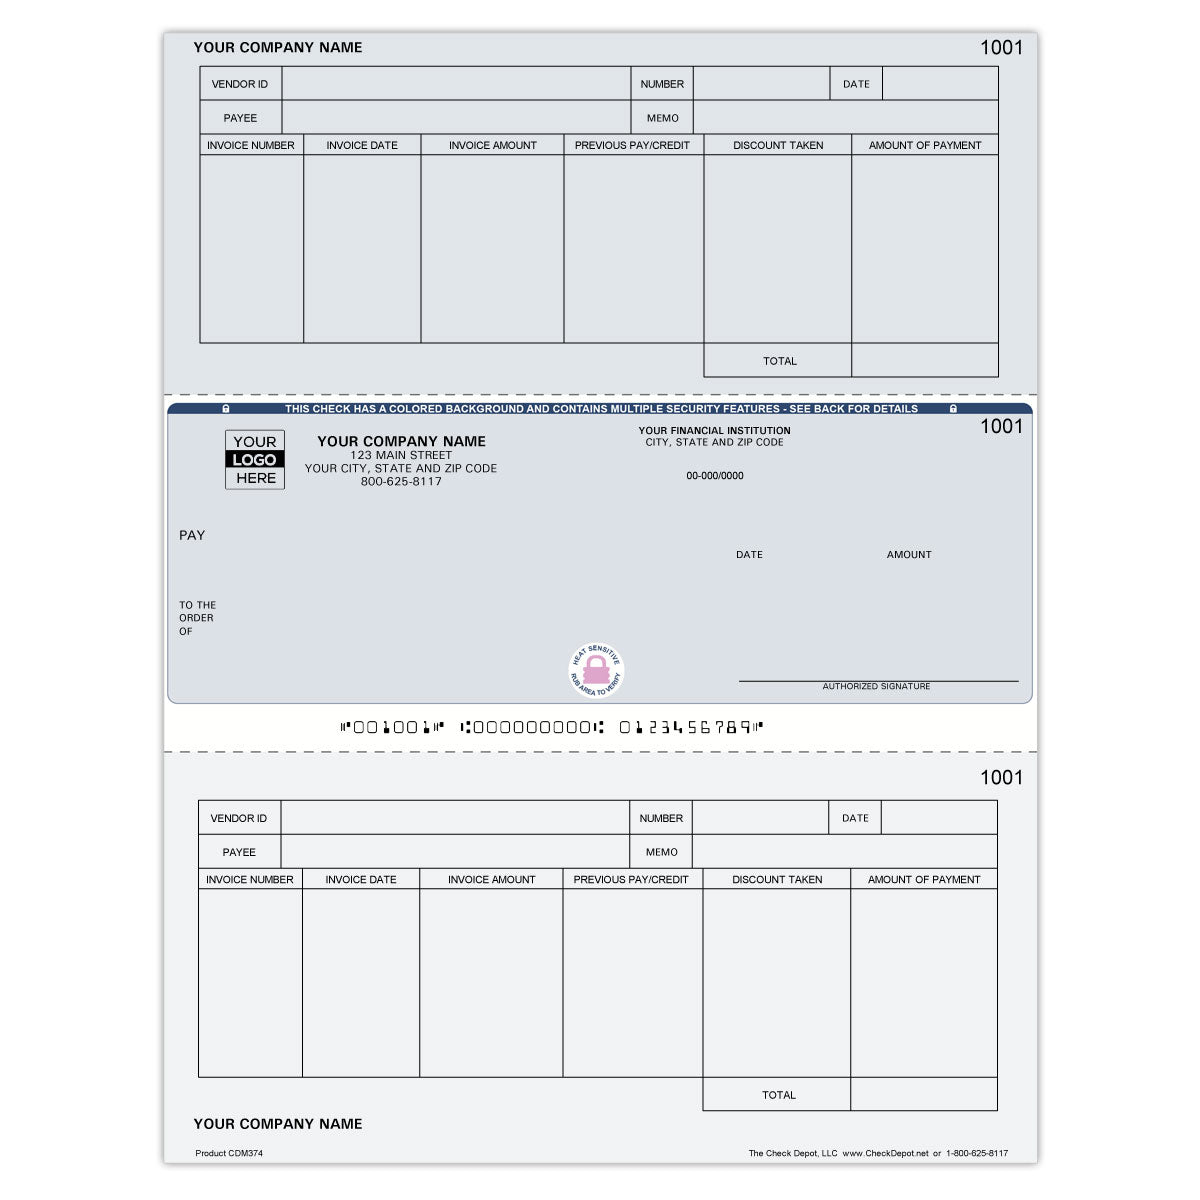 Laser Middle Accounts Payable Computer Checks - Check Depot